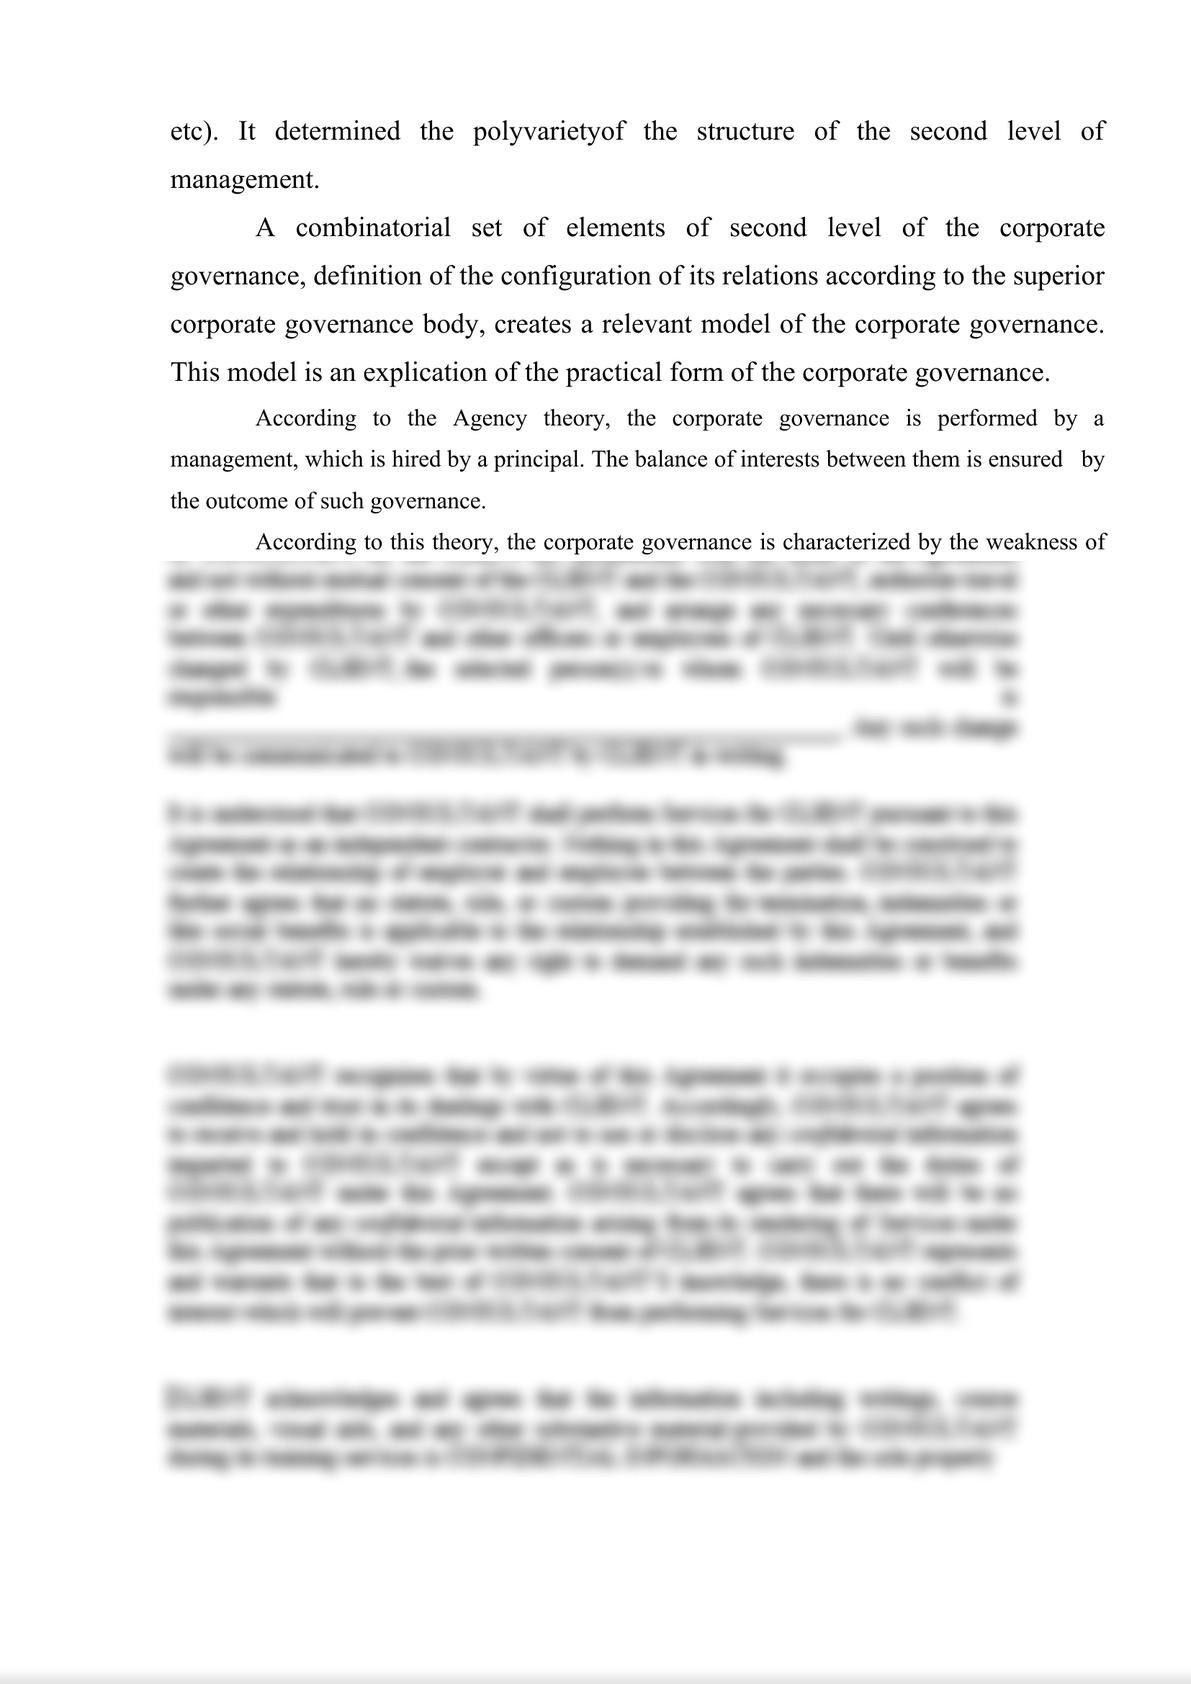 LEGAL ASPECTS OF THE CORPORATE GOVERNANCE-4